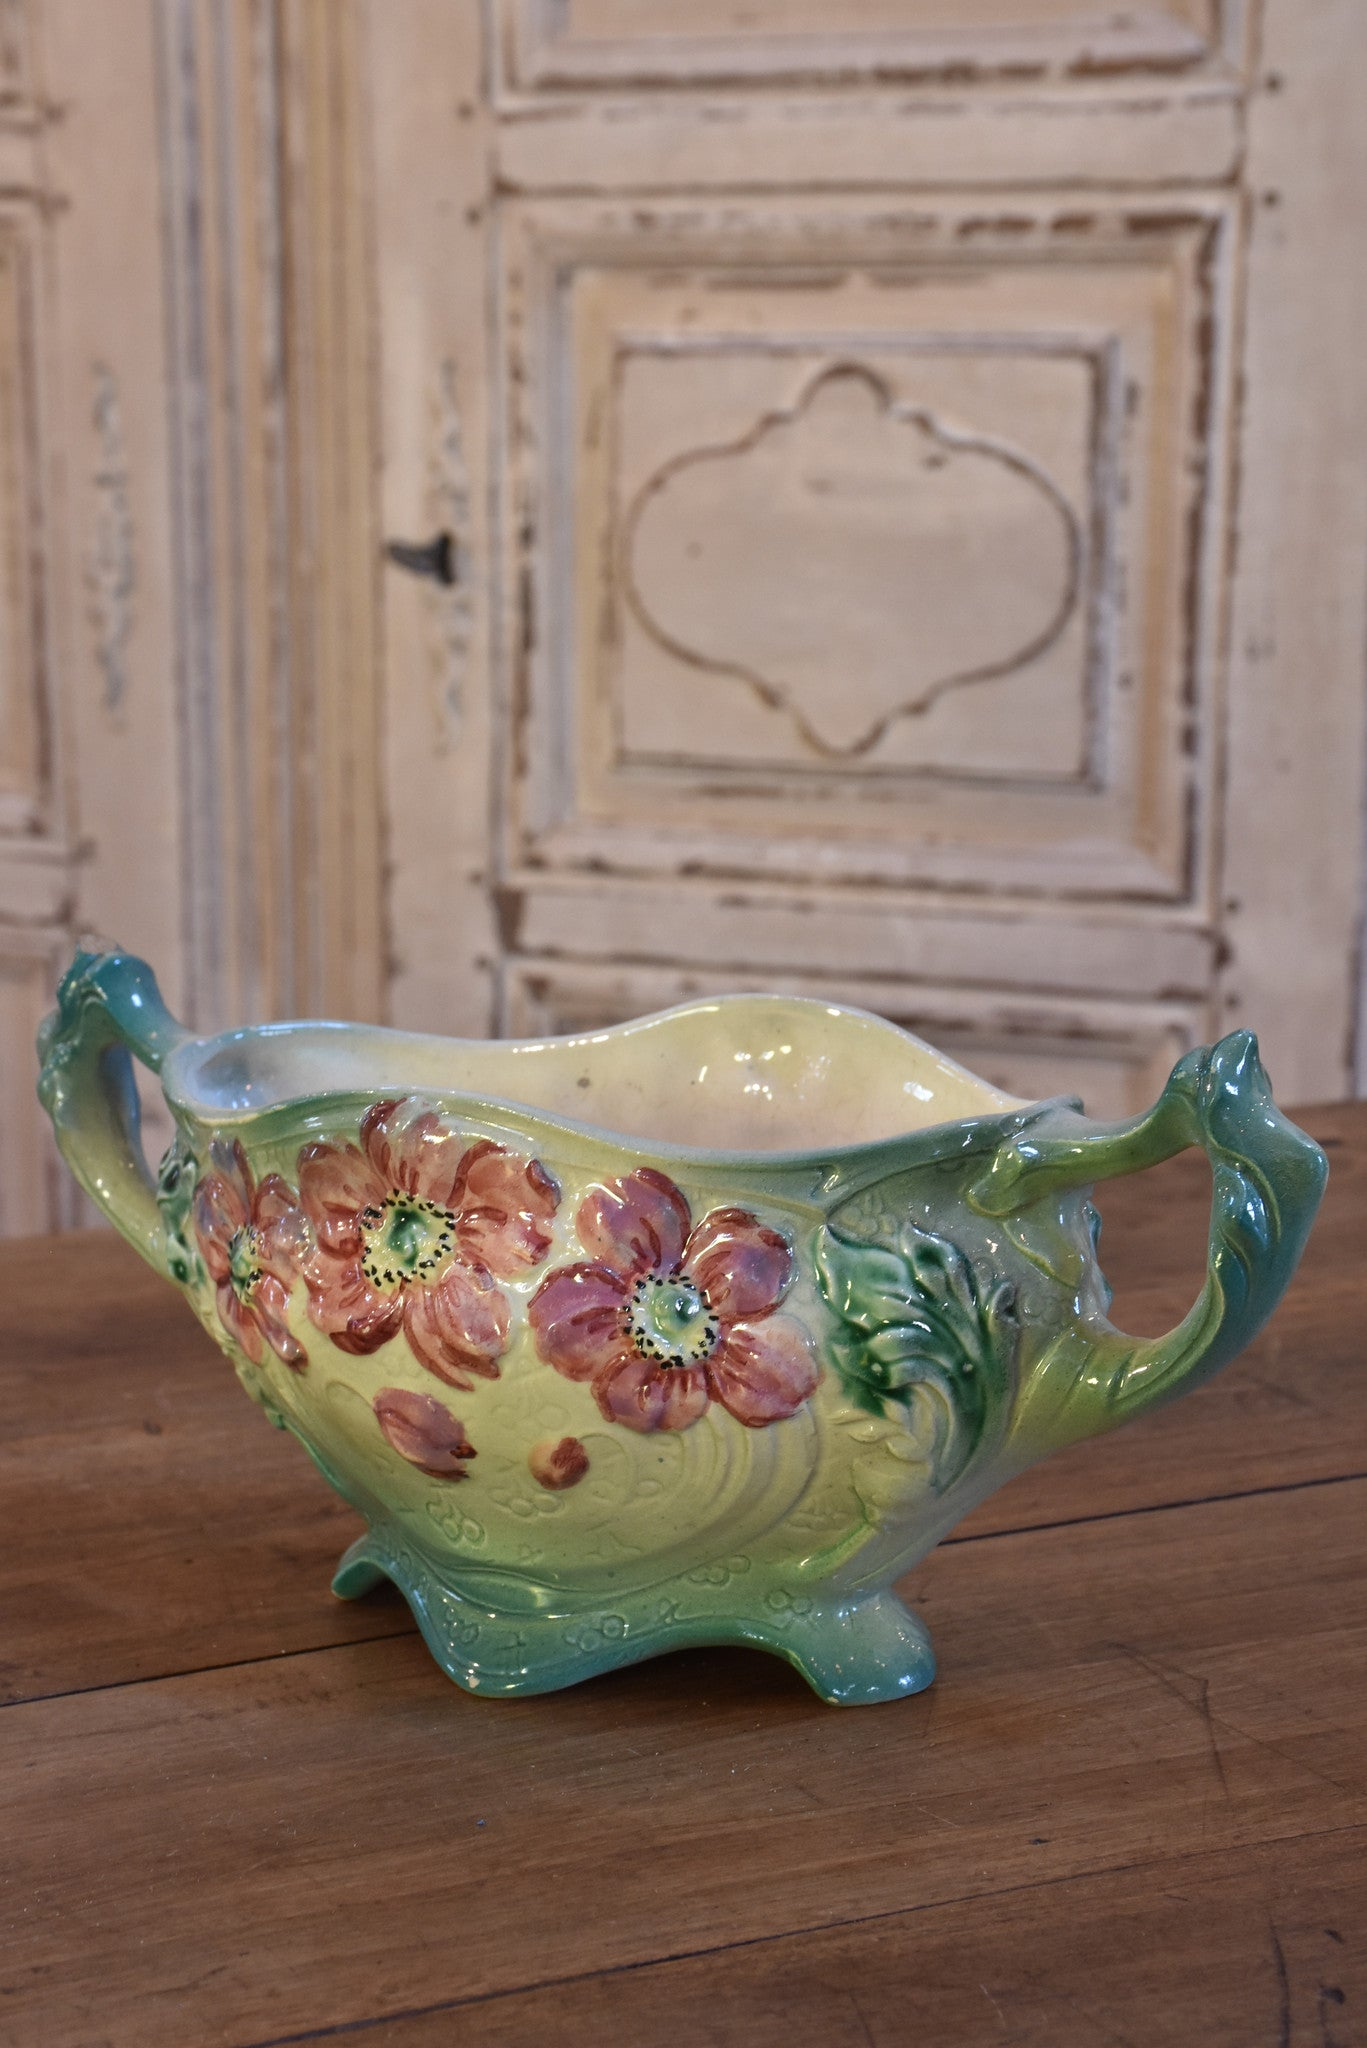 Antique Barbotine vase with pink flowers